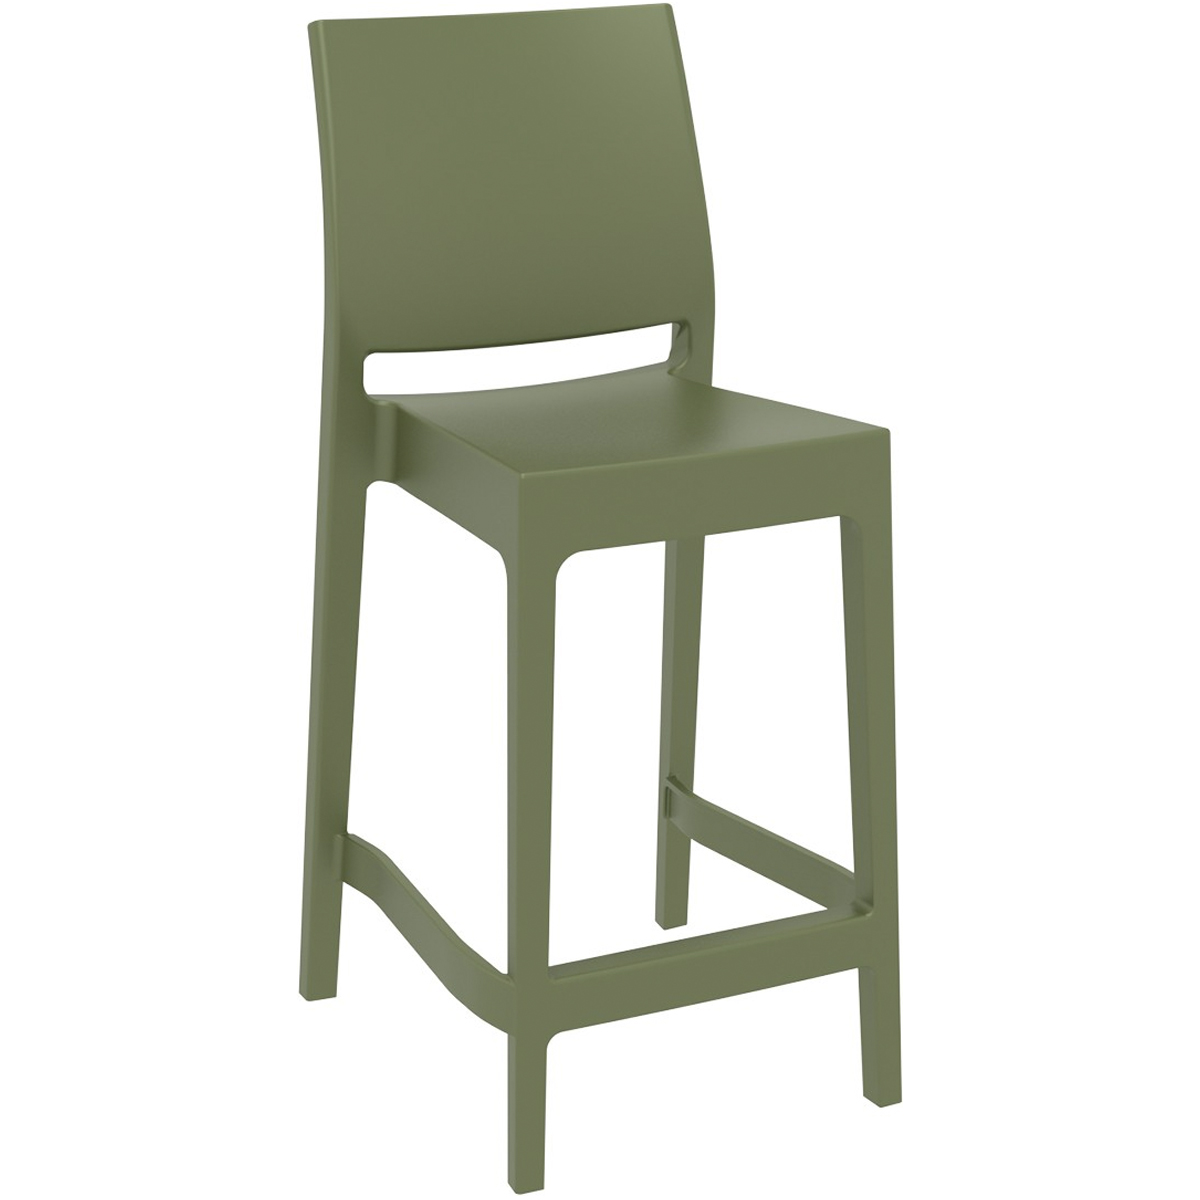 NEO-9E Stackable Plastic Outdoor Bar Stool Bar Chair